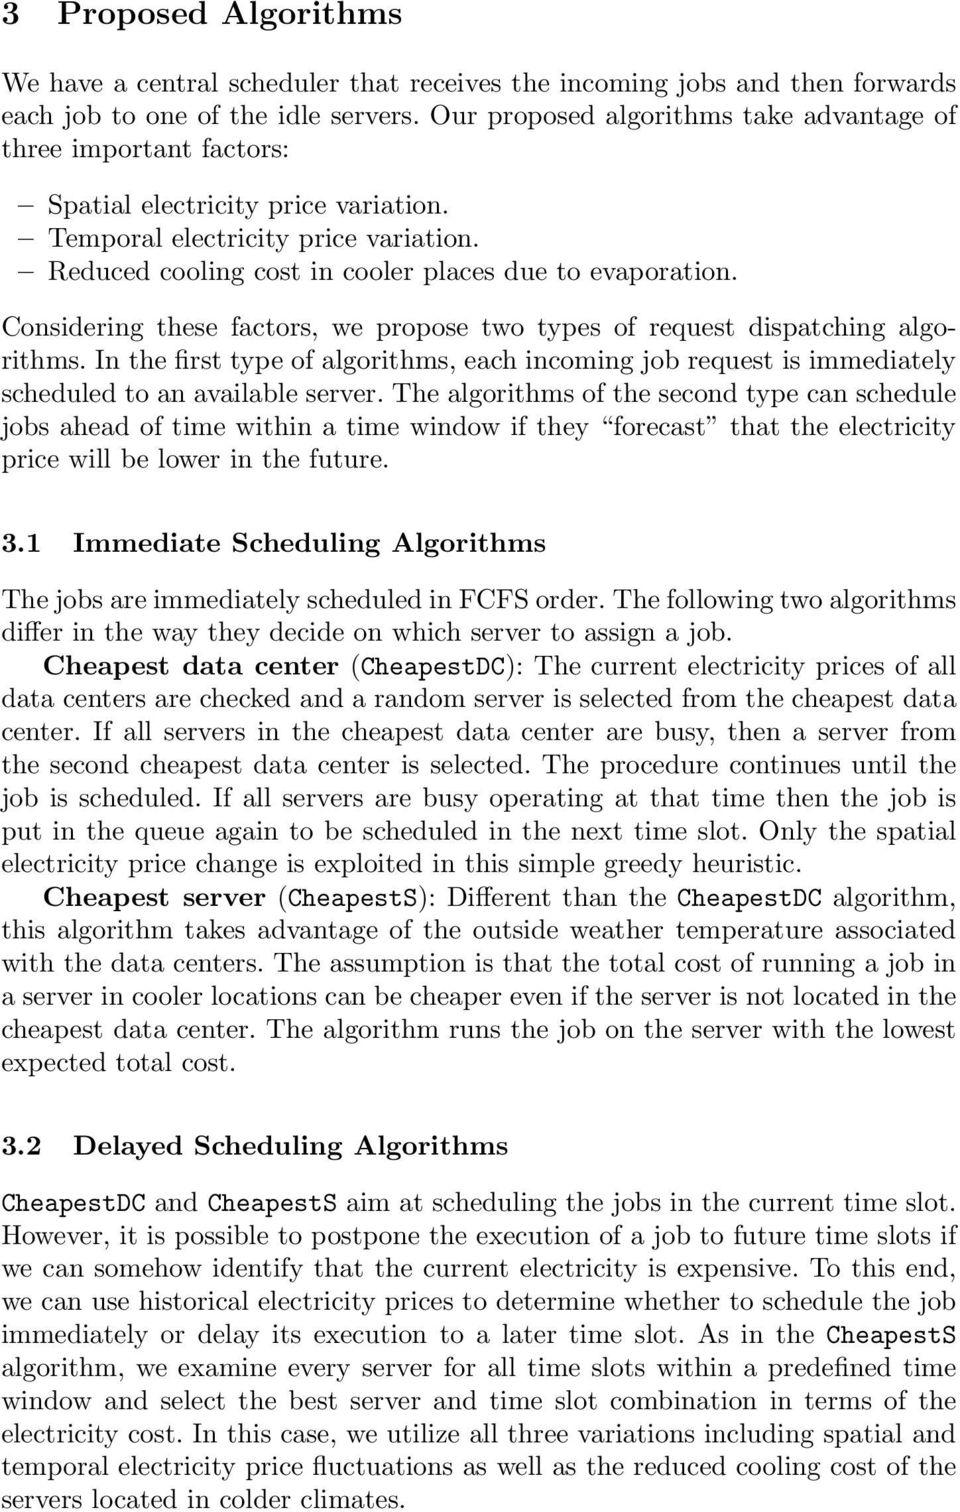 Considering these factors, we propose two types of request dispatching algorithms. In the first type of algorithms, each incoming job request is immediately scheduled to an available server.